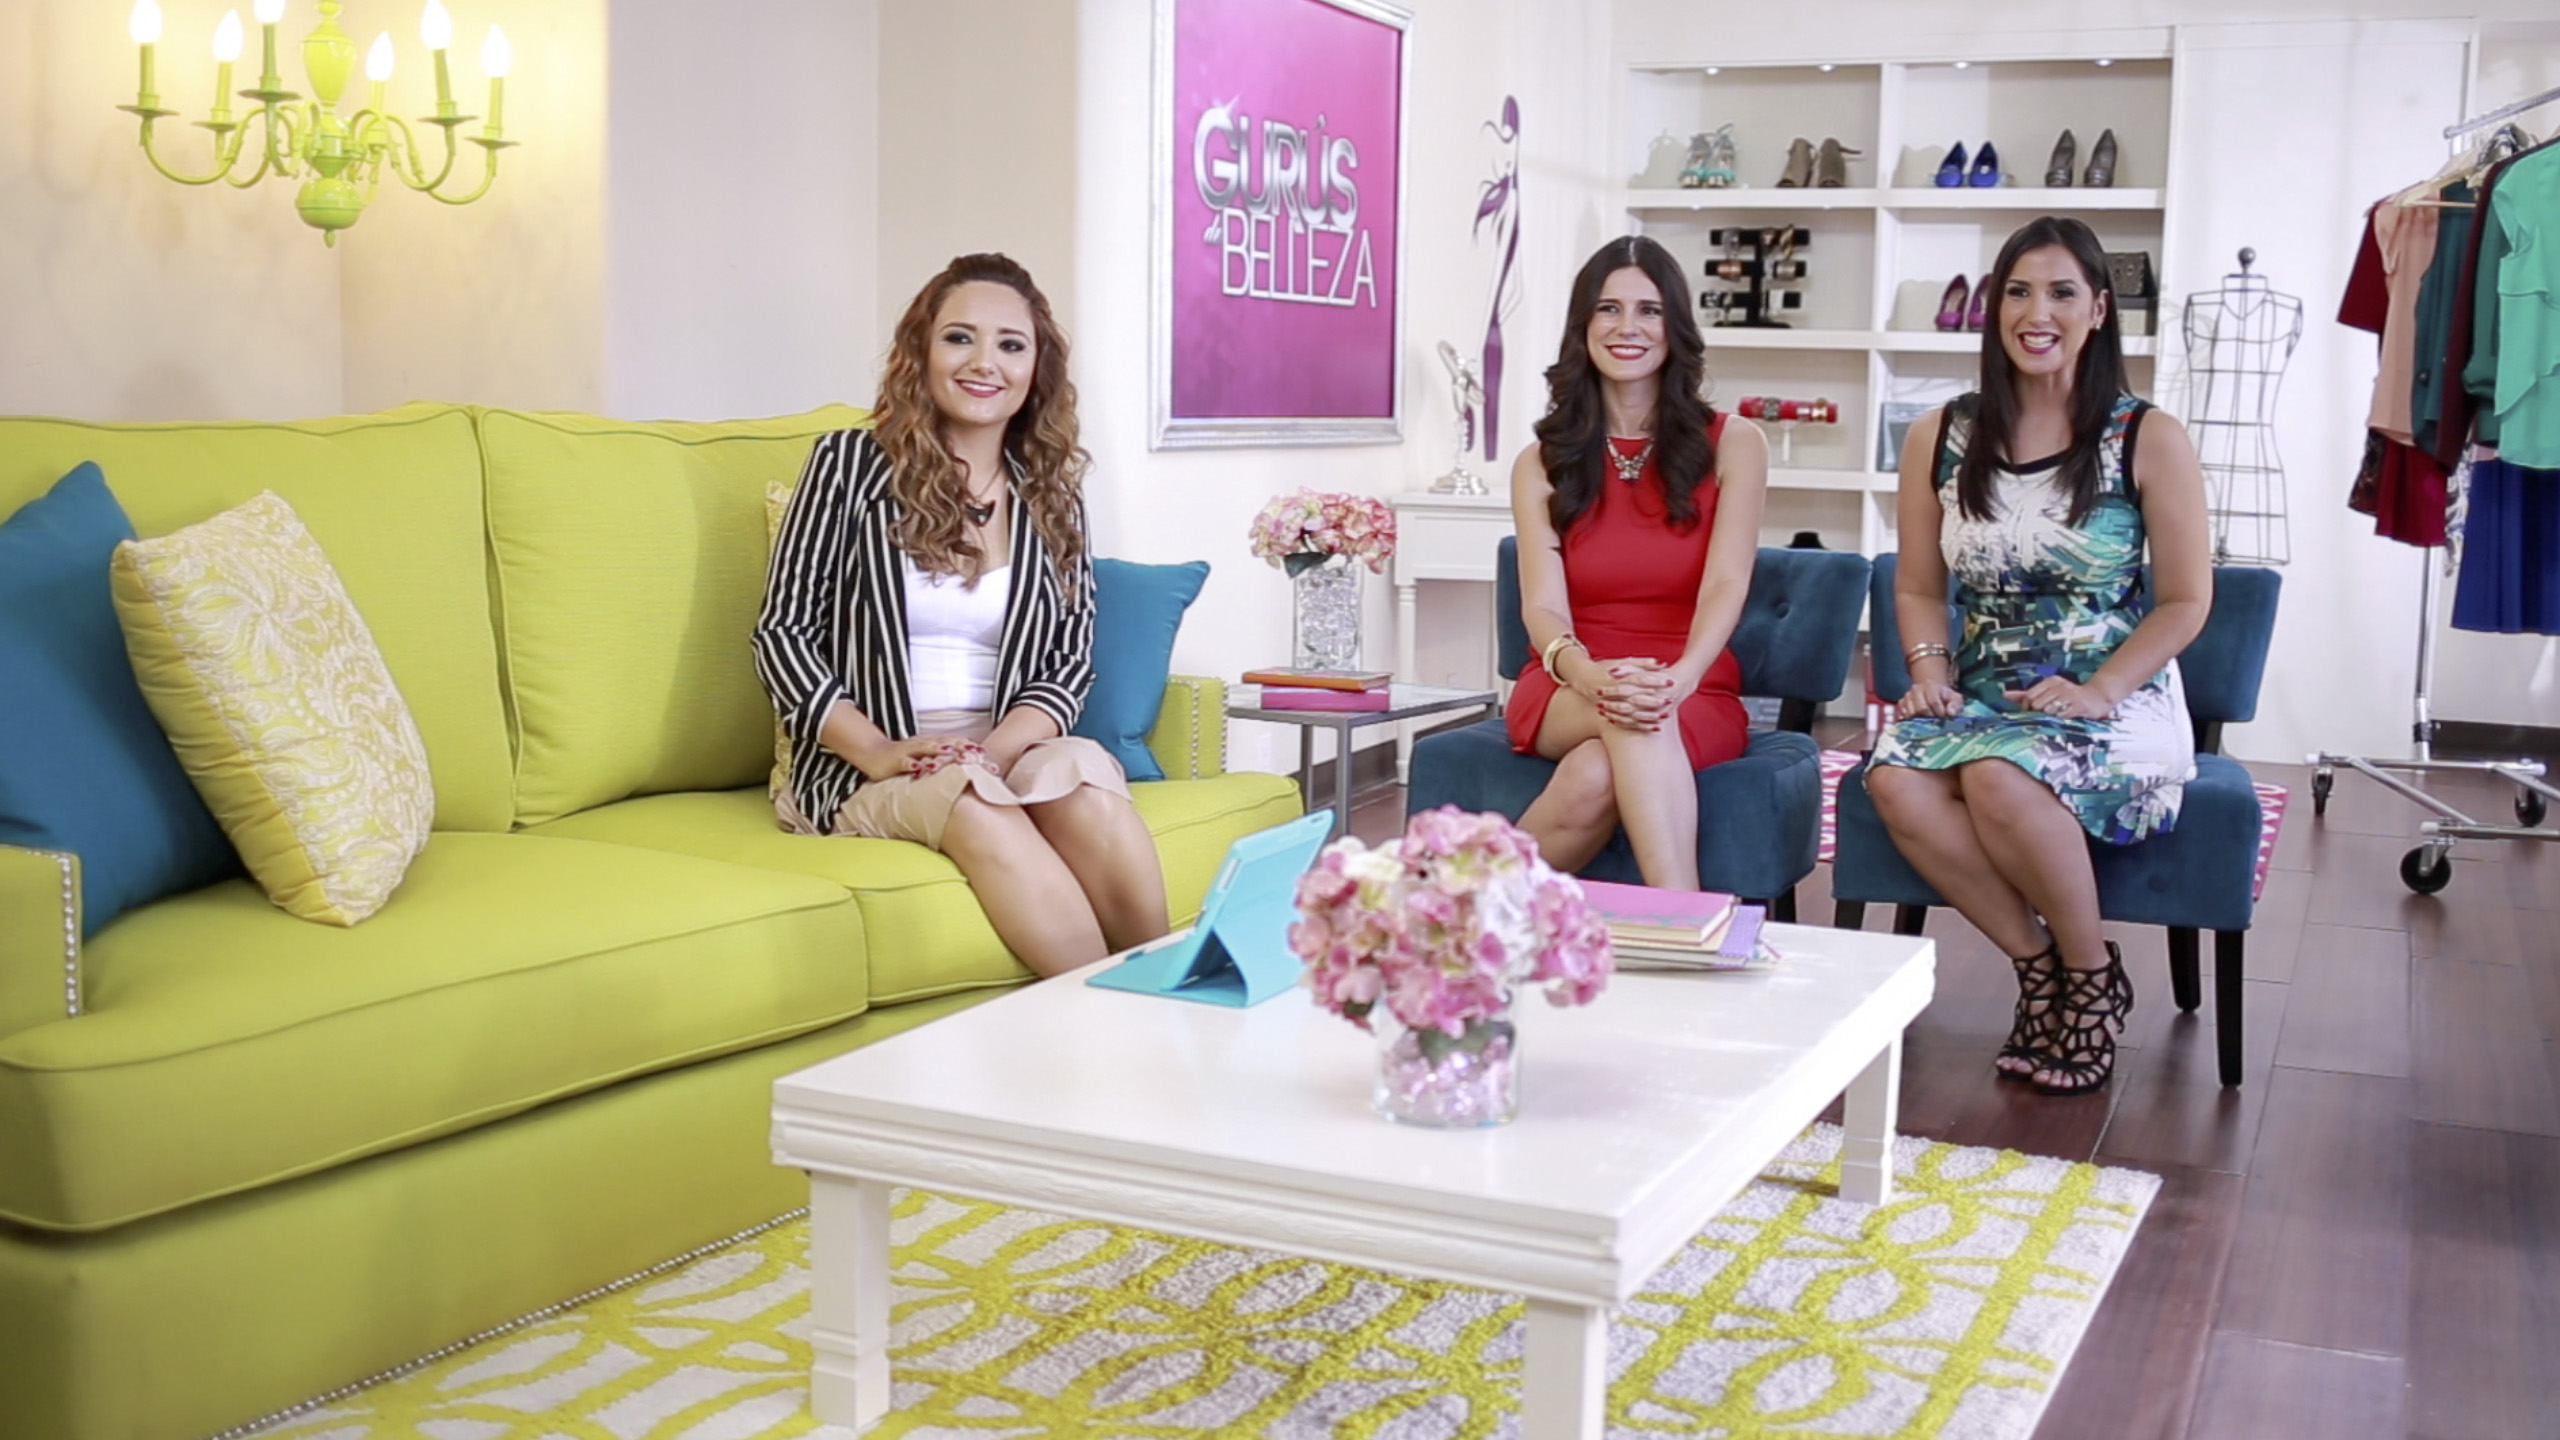 A Trio Of Latina Experts Hosts The New Discovery Familia Original Production Gurus De Belleza